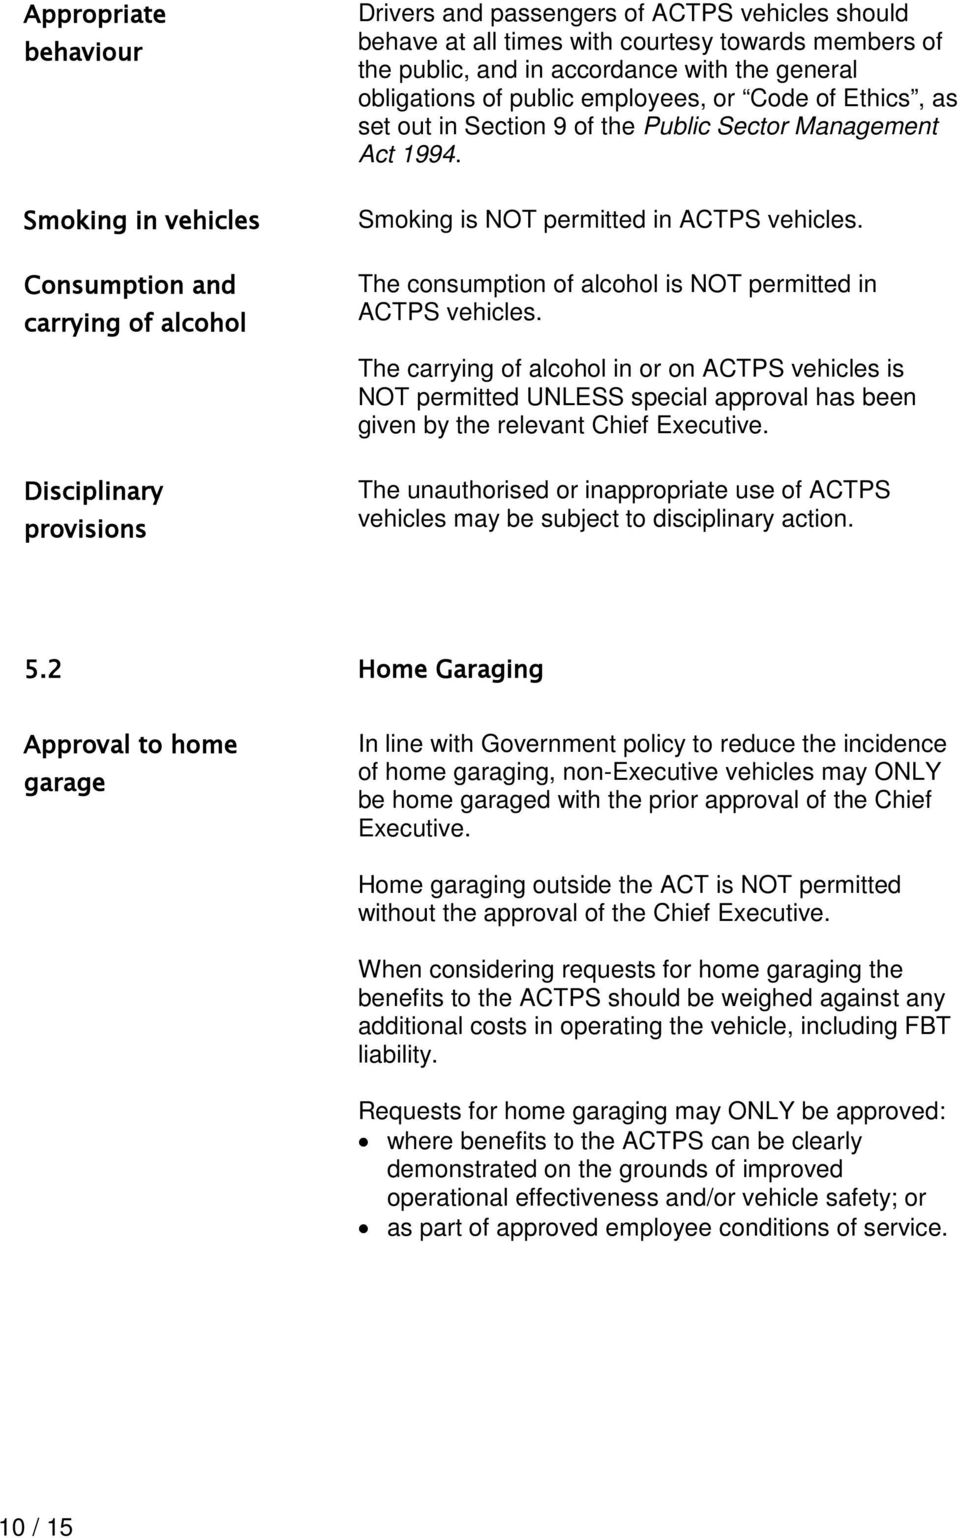 The consumption of alcohol is NOT permitted in ACTPS. The carrying of alcohol in or on ACTPS is NOT permitted UNLESS special approval has been given by the relevant Chief Executive.